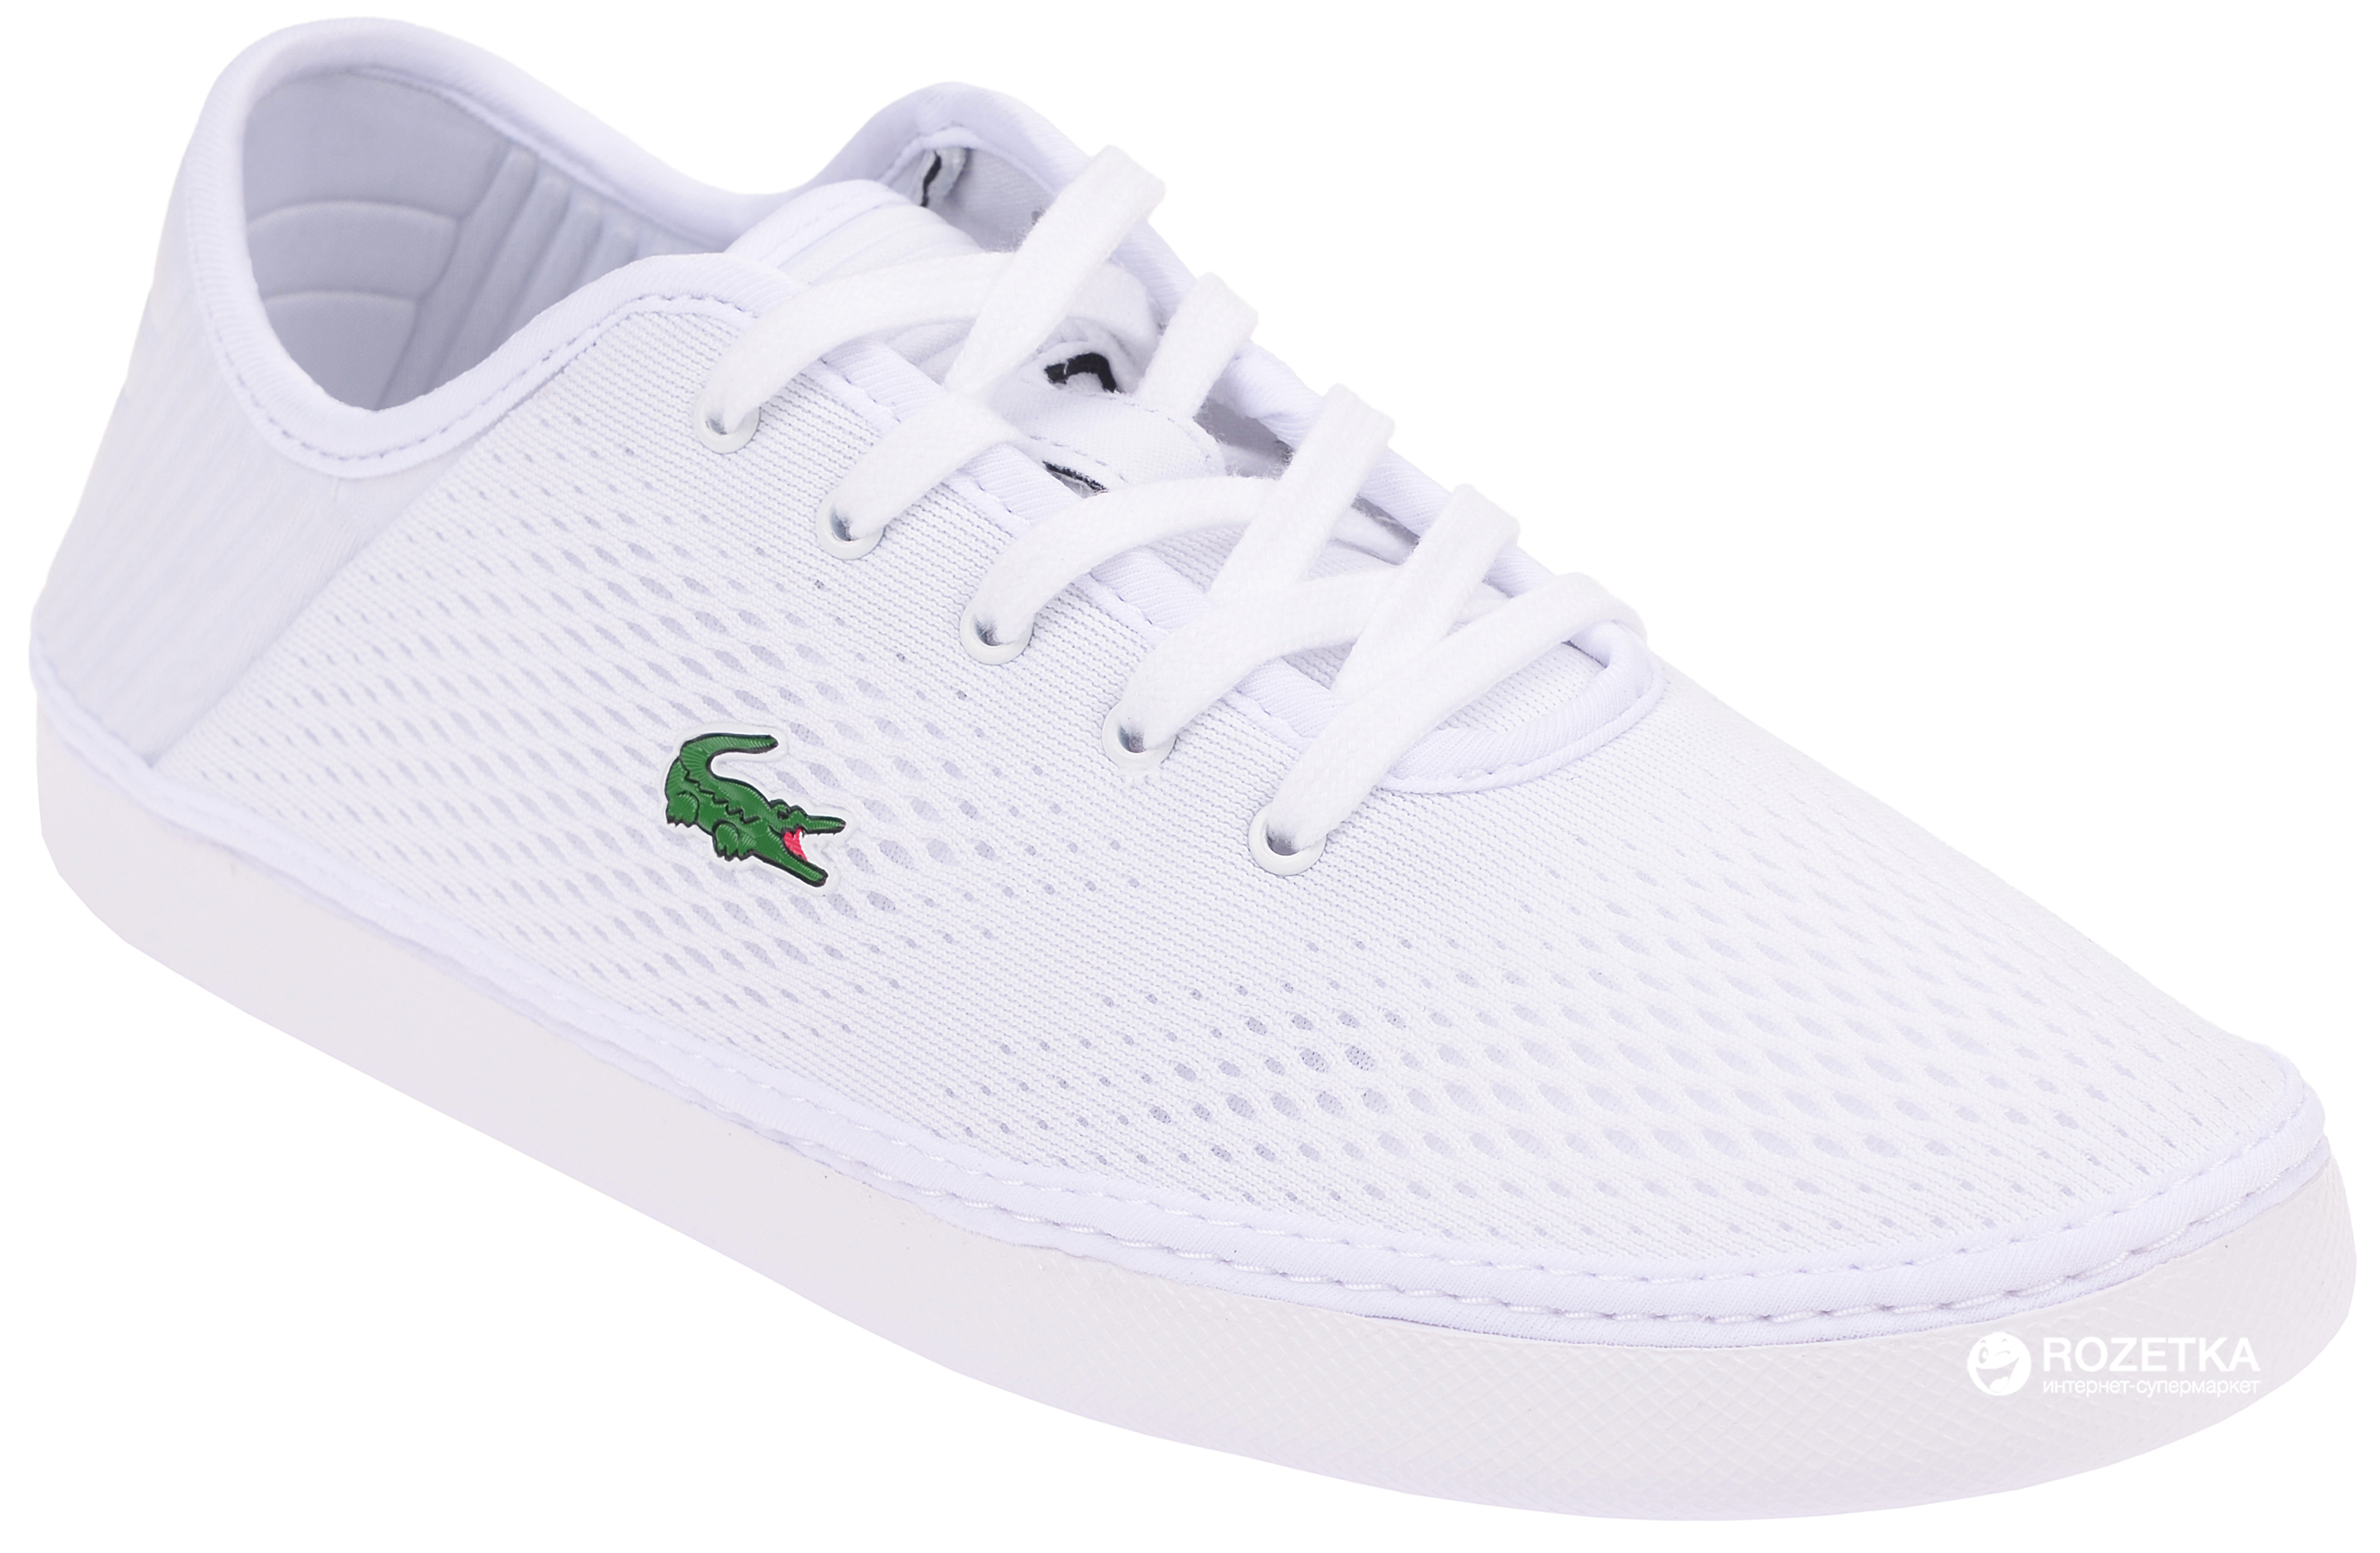 Кеды Lacoste L.Ydro Lace 118 1 Cam 735CAM006821G 40.5 (T75) 27 см 2accf111c70a2